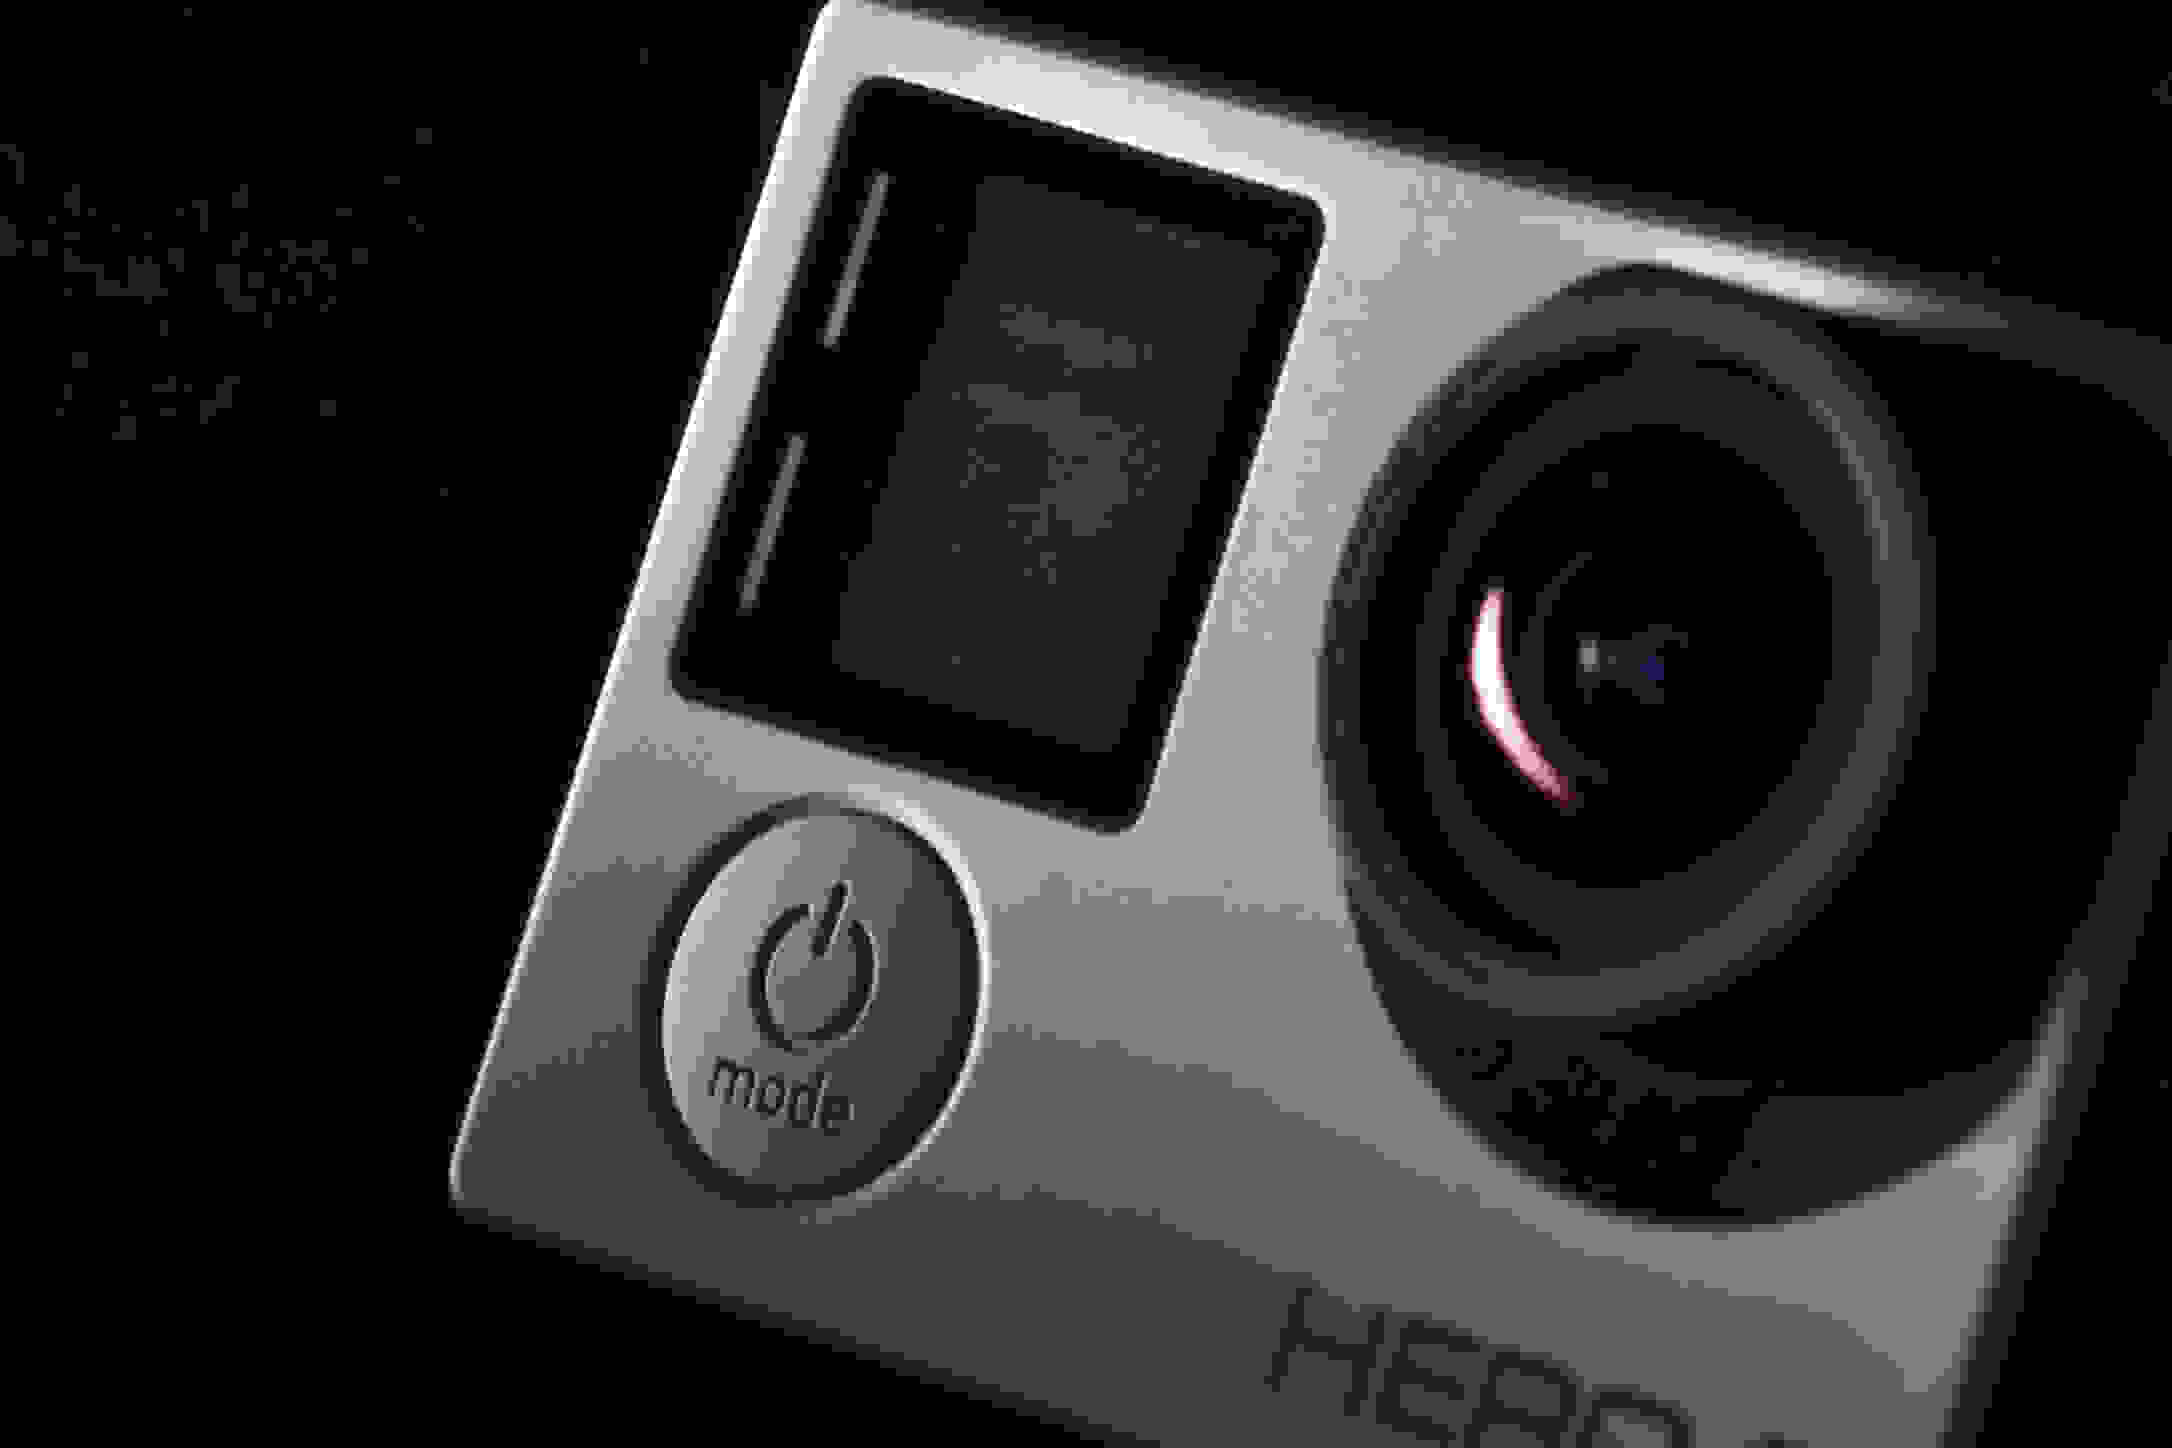 A photograph of the GoPro Hero 4 Silver's power button.